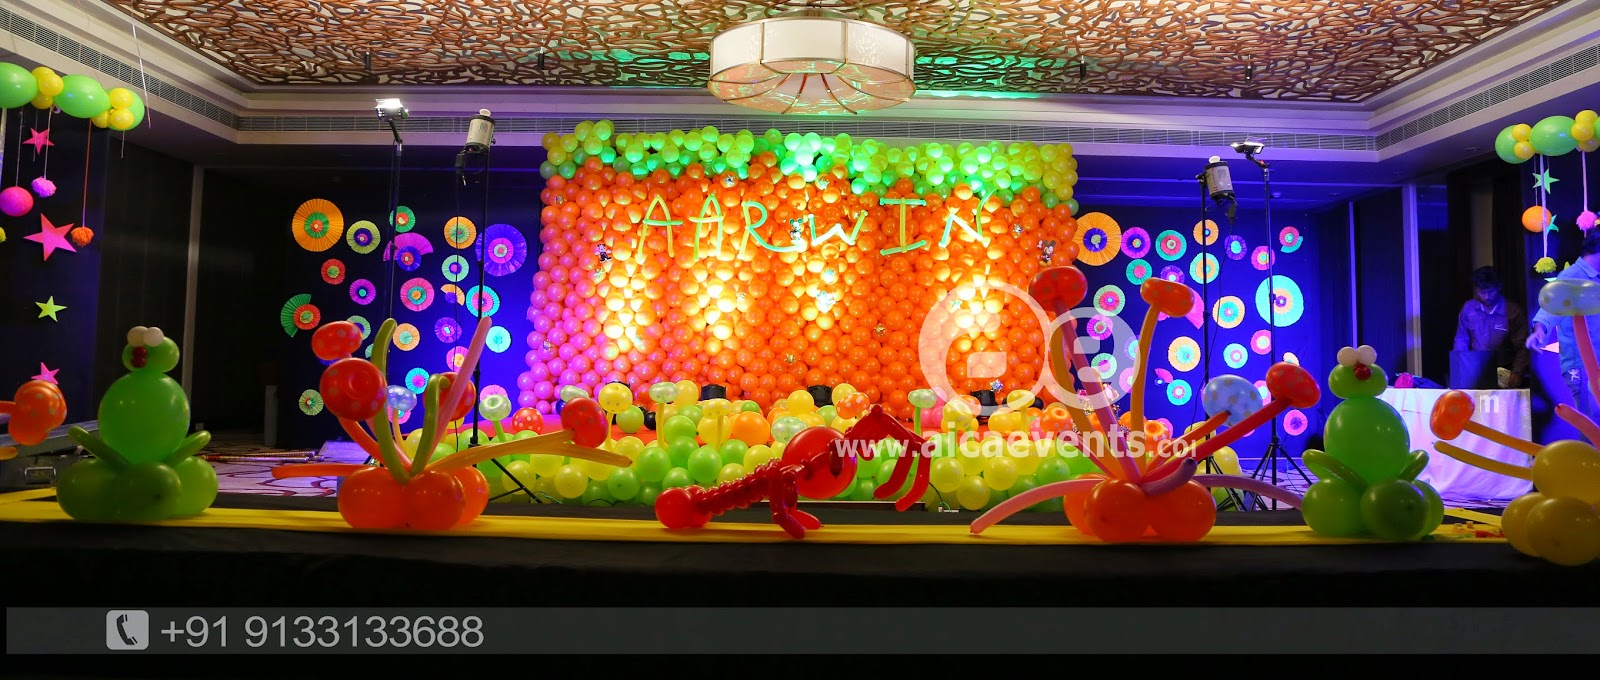 Aicaevents india balloon wall stage backdrop decoration for Balloon decoration for stage